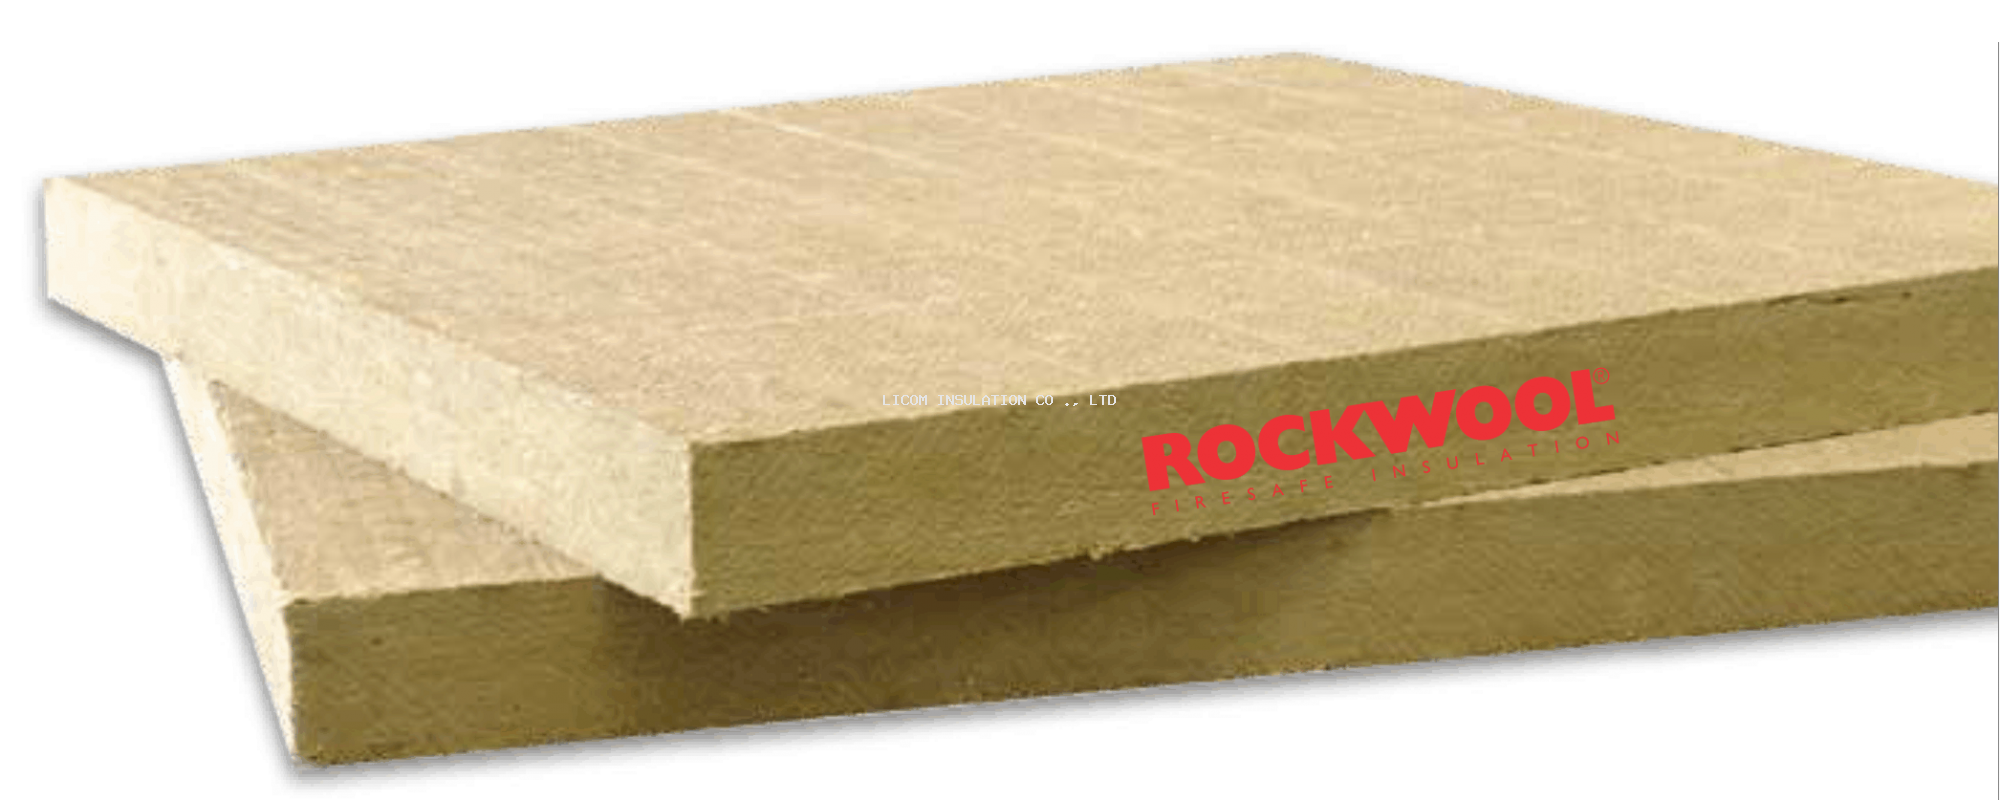 Rockwool for Rockwool sound insulation